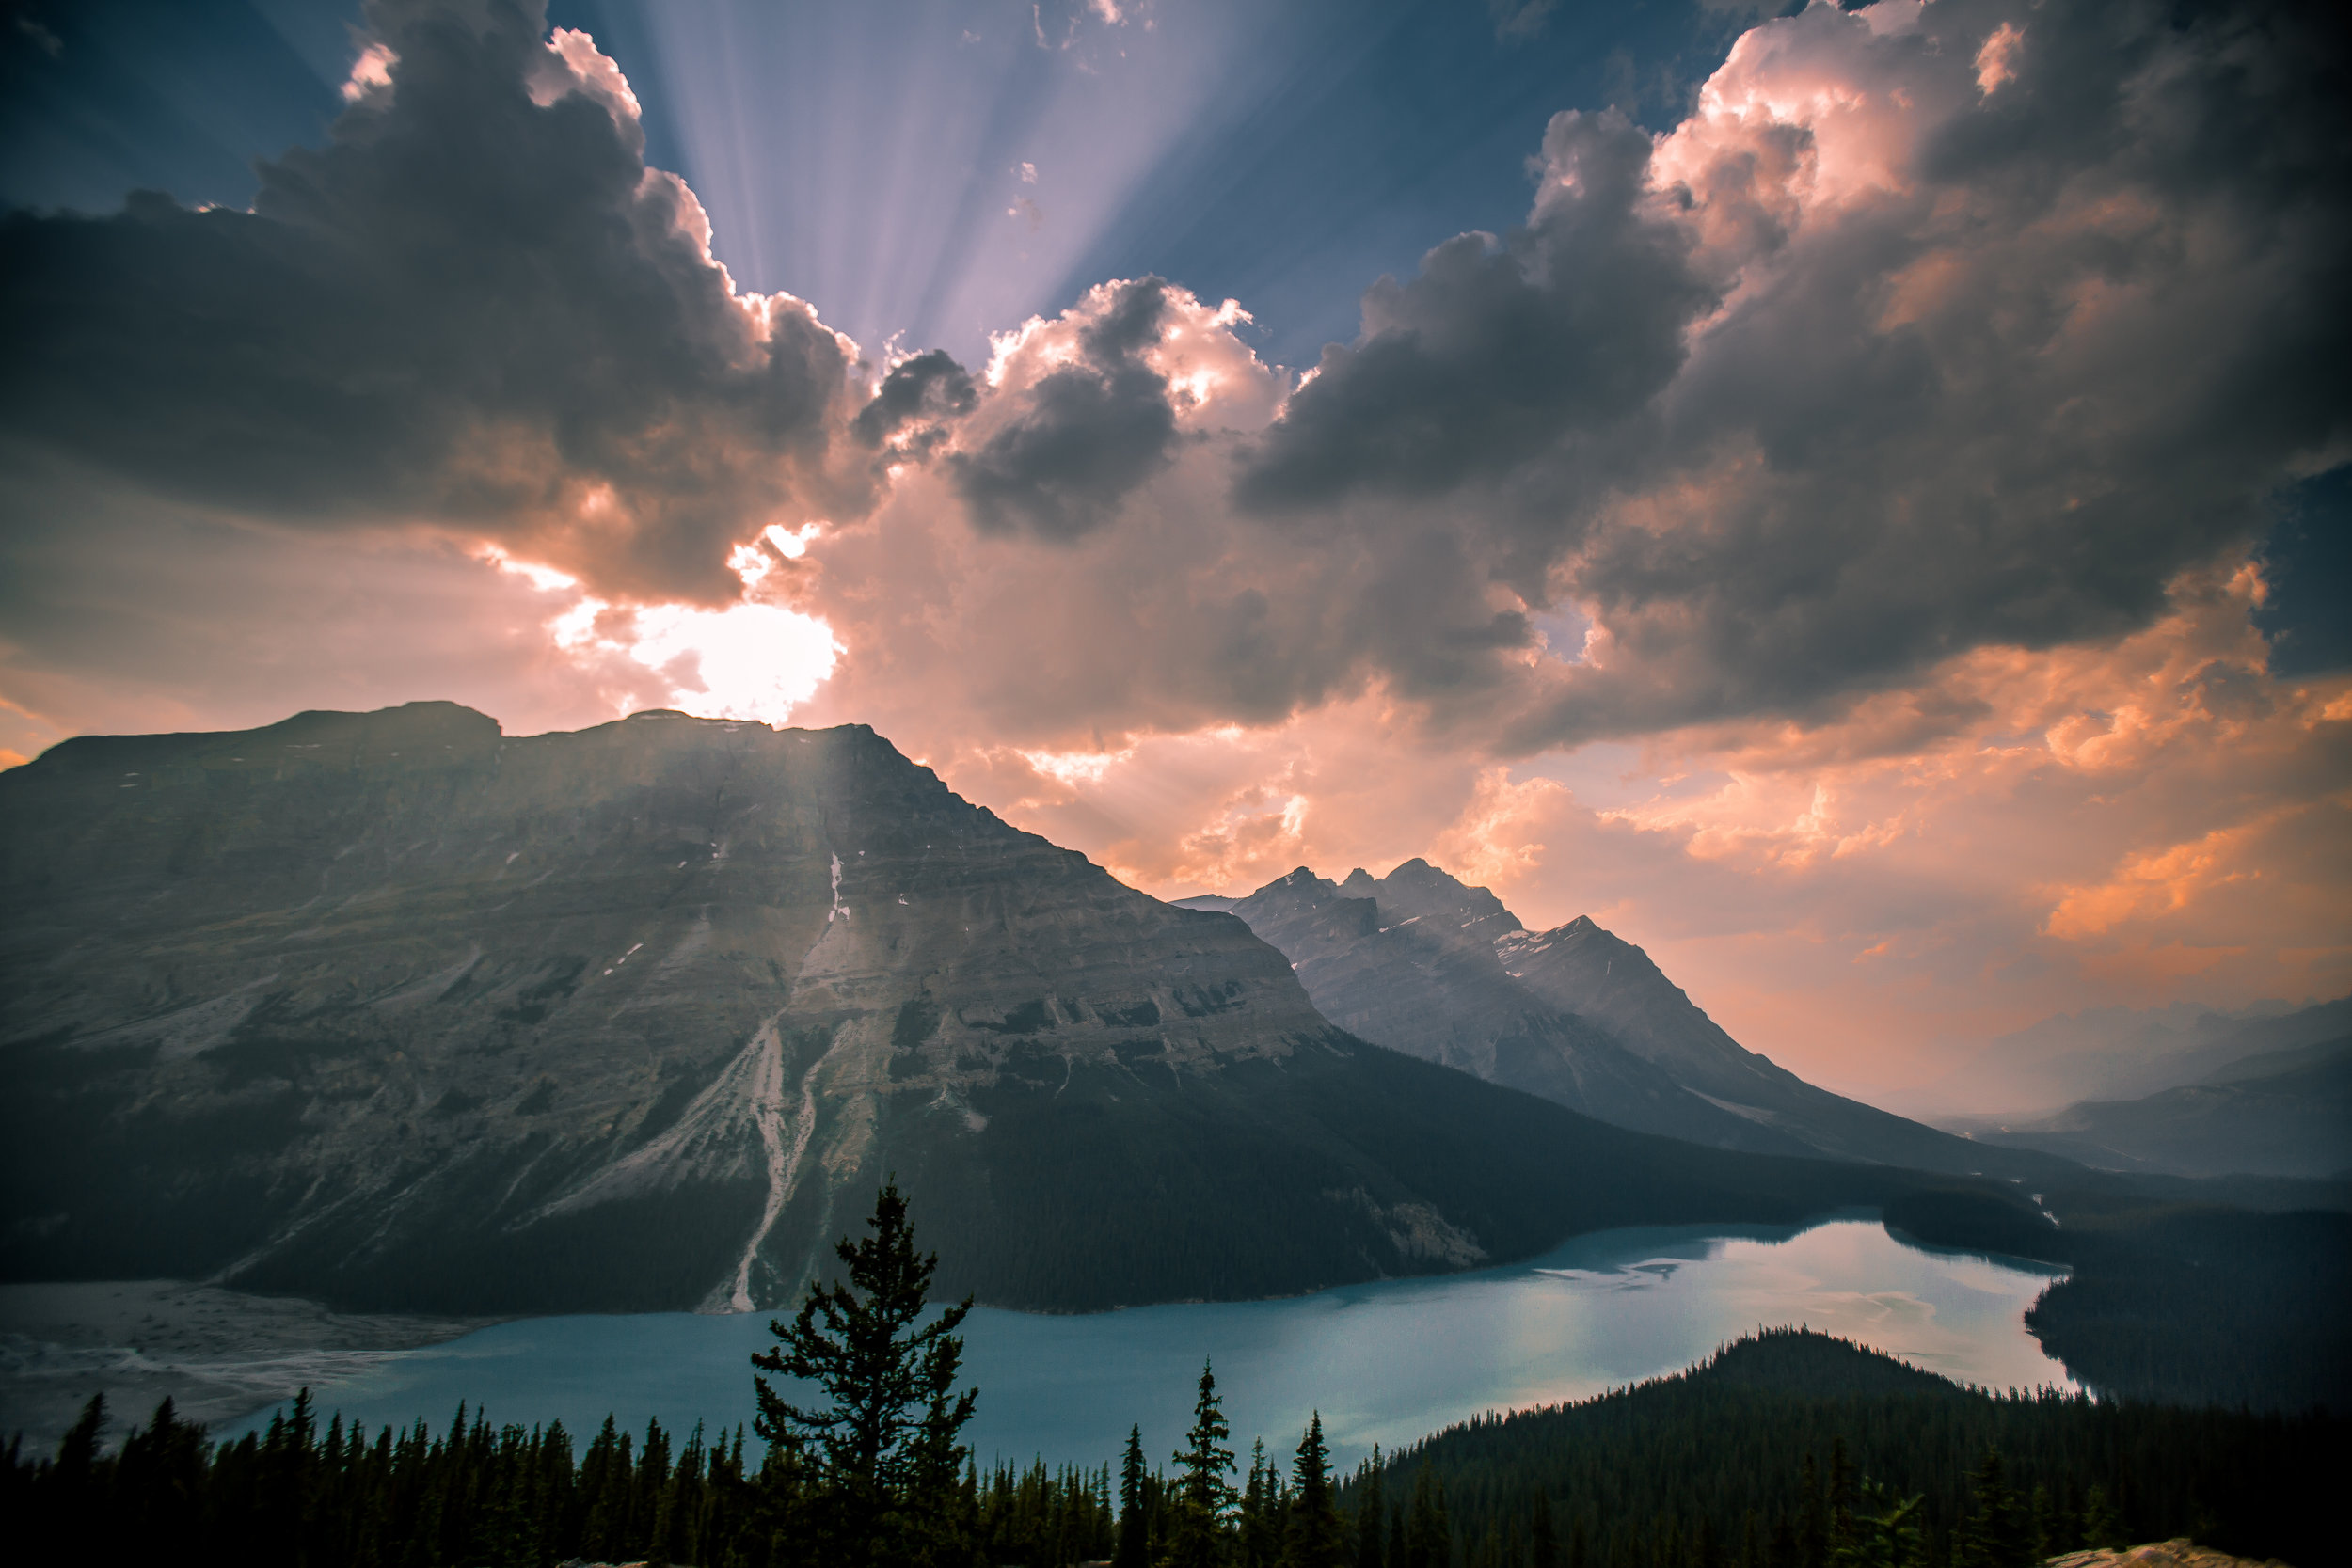 nicole-daacke-photography-banff-national-park-yoho-jasper-canada-parks-alberta-landscape-photographer-canadian-rockies-elopement-photographer-kananaskis-landscape-photos-5037.jpg